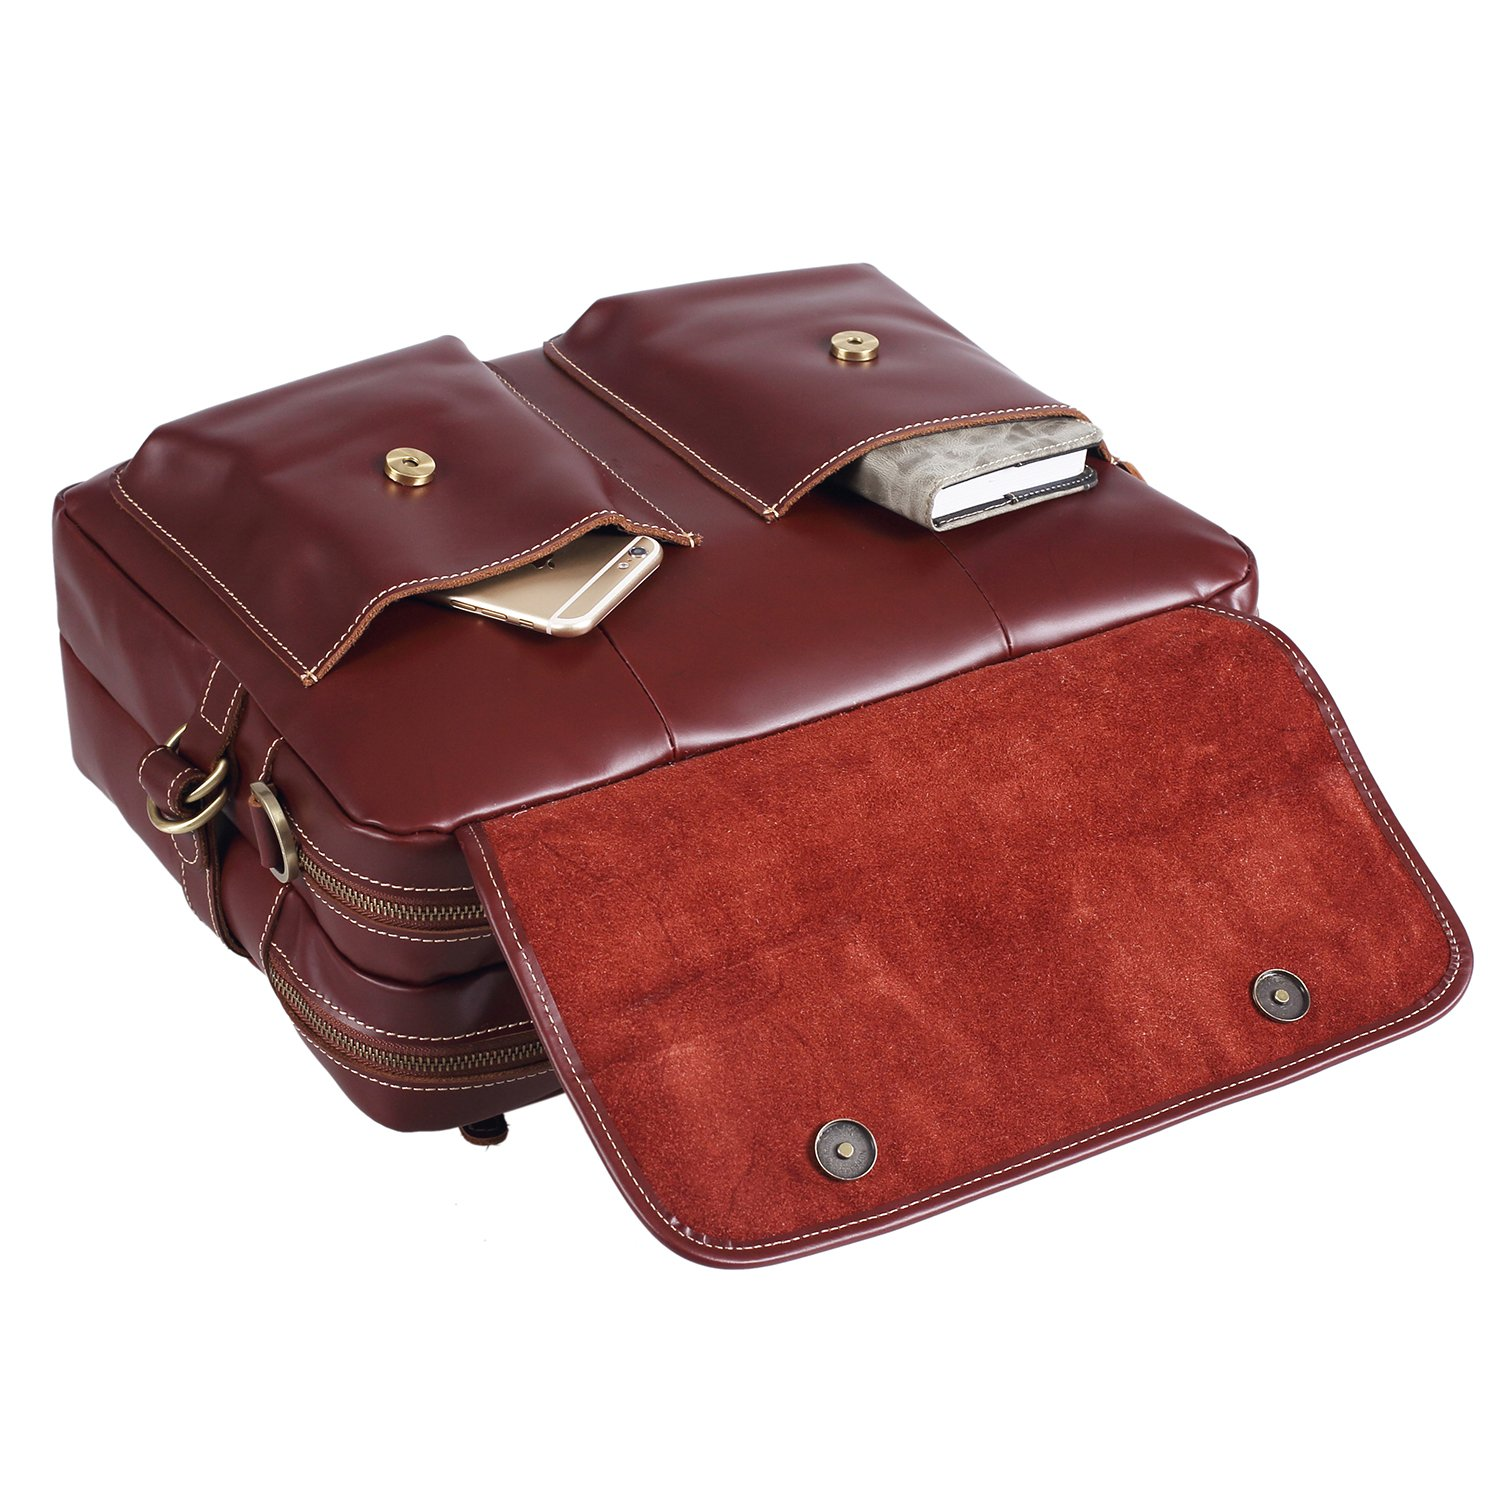 Polare Italian Leather Briefcase Should Bag Attache Fit 15.6inch Laptop by Polare (Image #5)